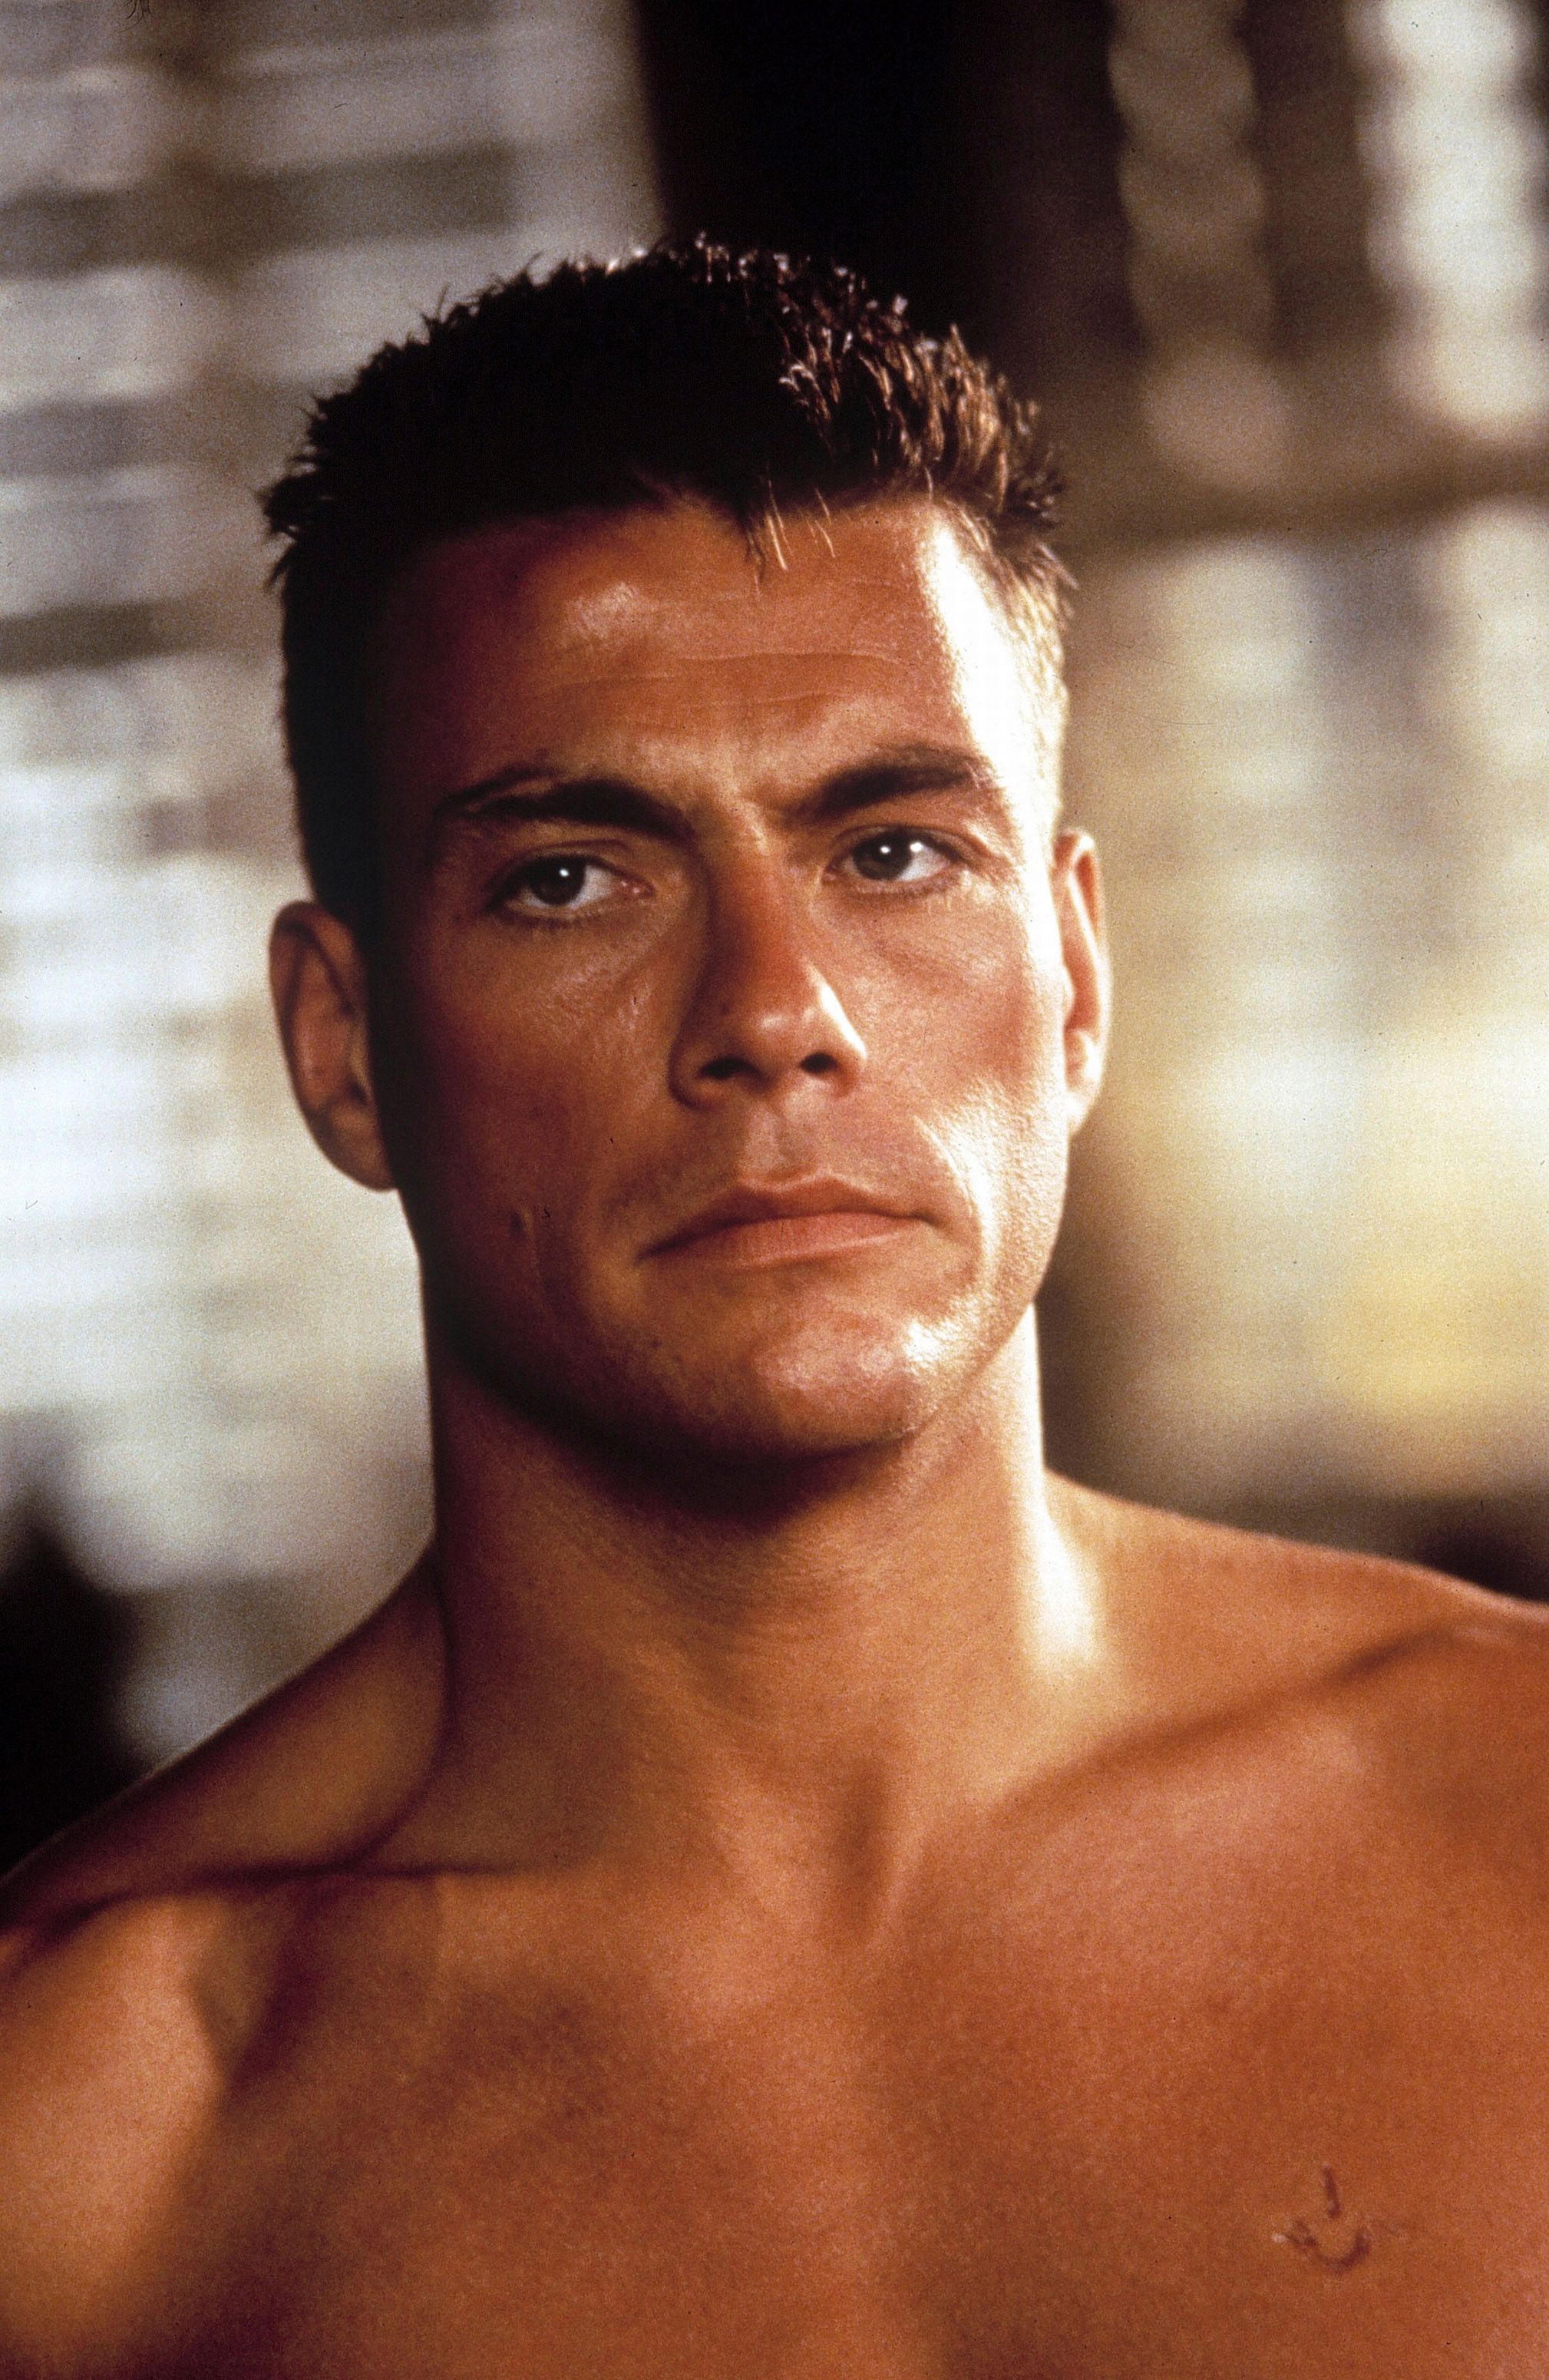 jean claude van damme looked so good back in the day but. Black Bedroom Furniture Sets. Home Design Ideas